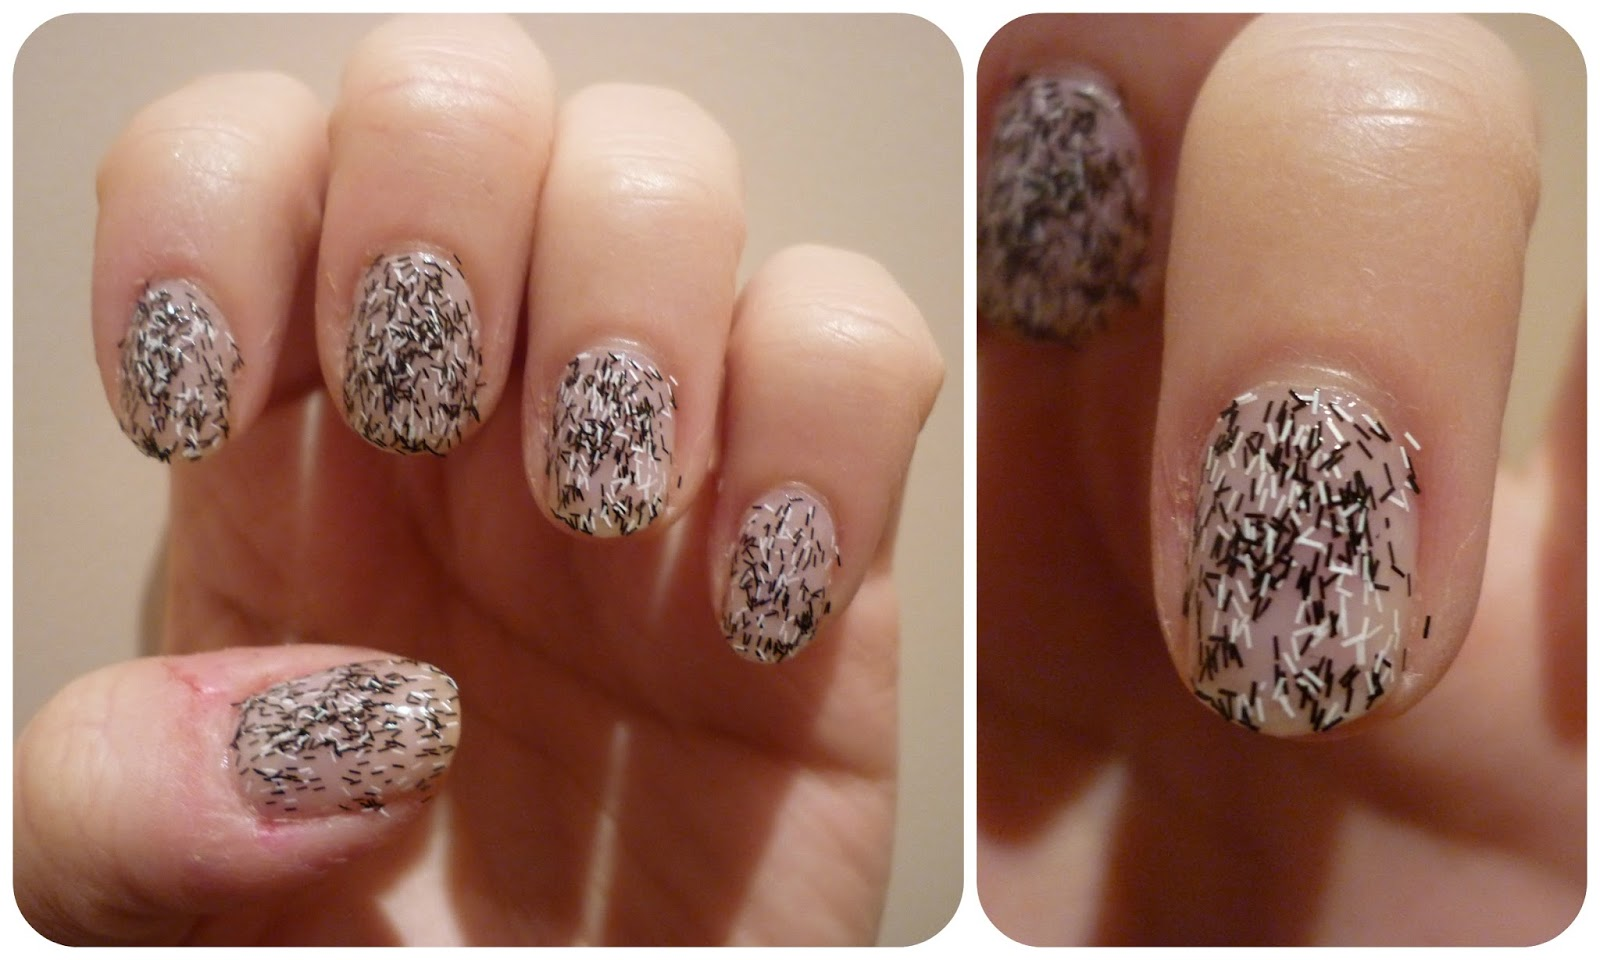 REVIEW: Sally Hansen Fuzzy Coat Textured Nail Colour | taken by surprise